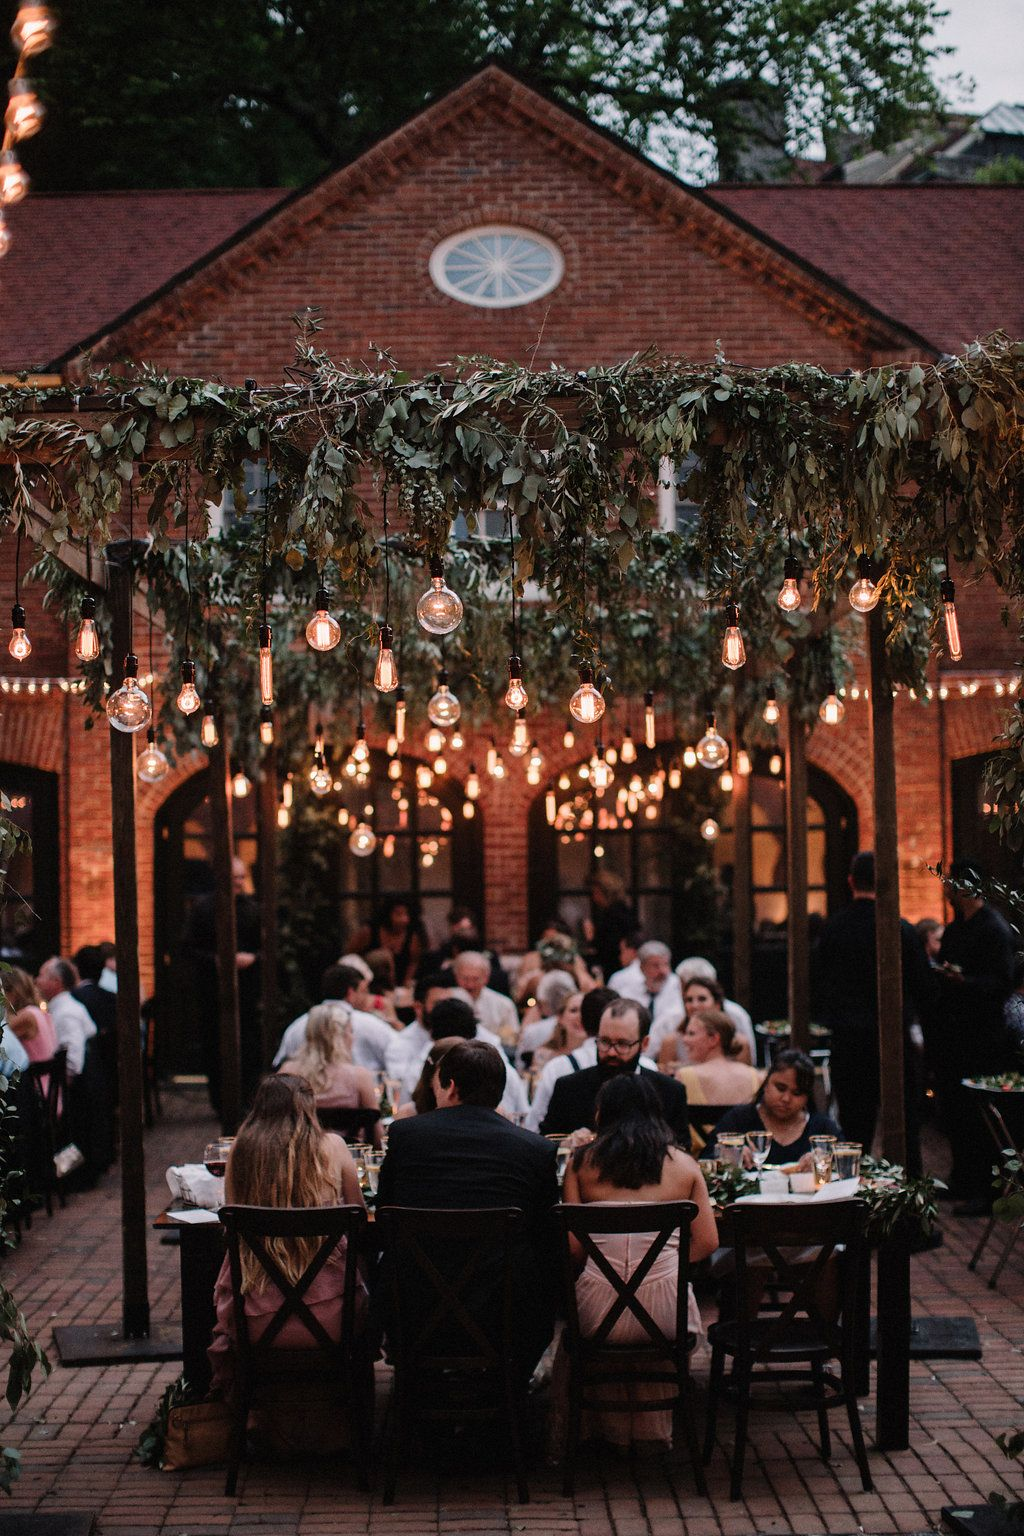 Greenery And Edison Light Bulbs Make For A Al Fresco Dinner Party Photo By Brightwood Photography